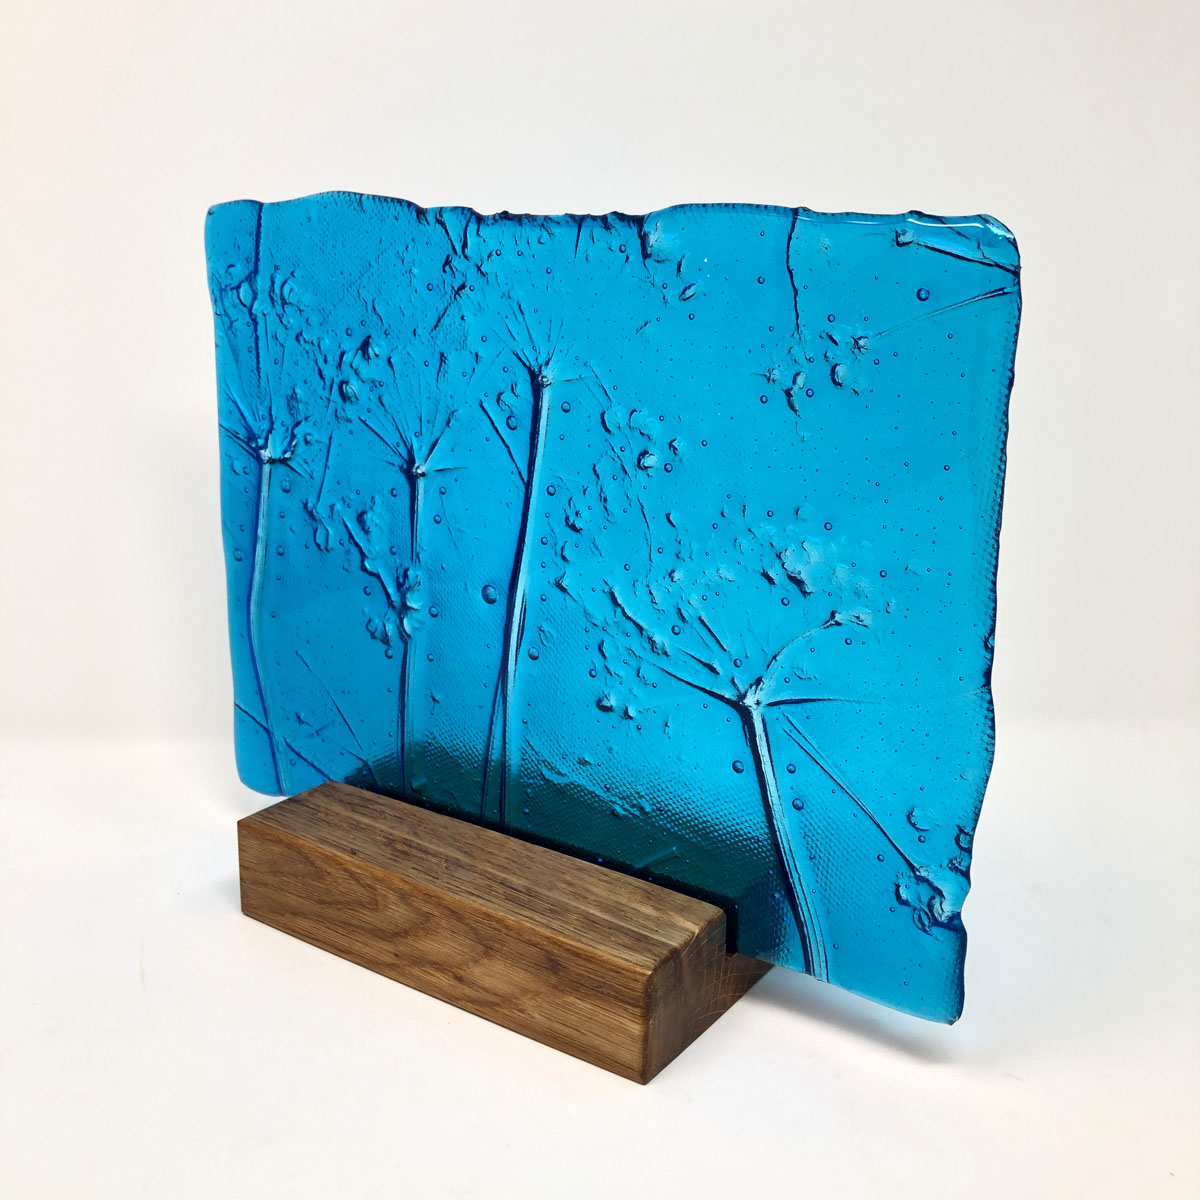 SHI272, Turquoise Hedgerow in block